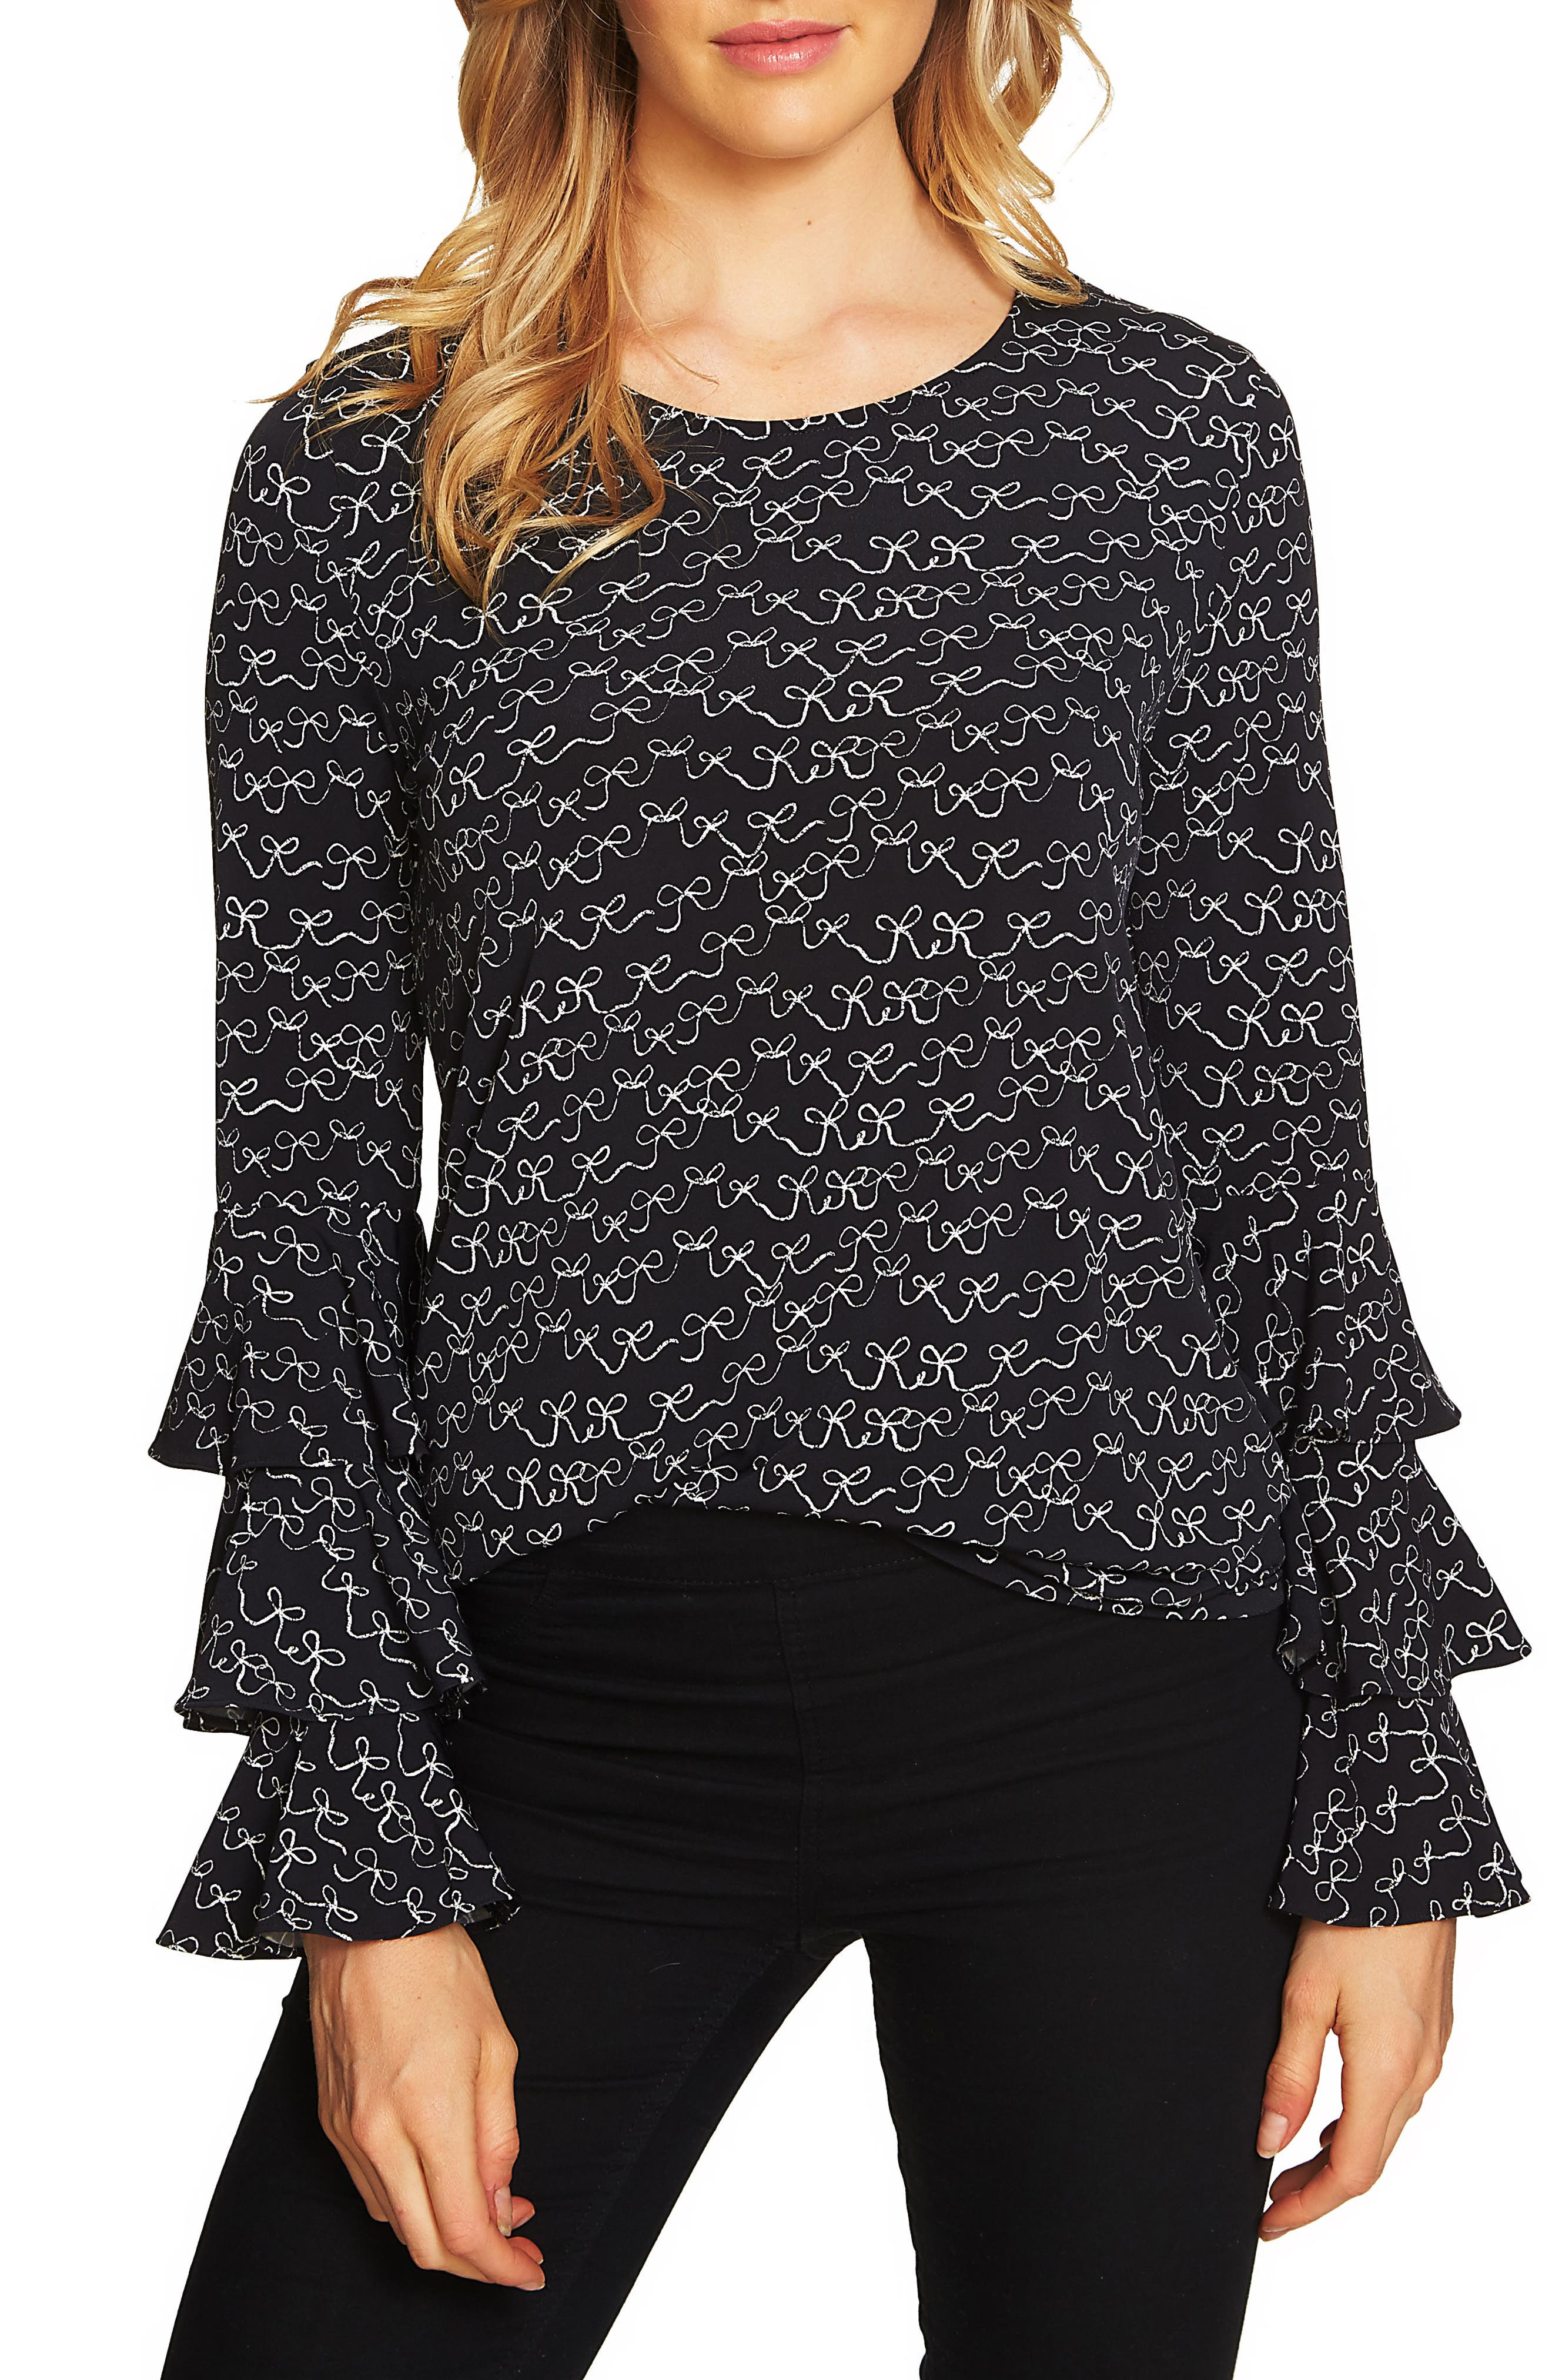 Danity Tiered Ruffle Bell Sleeve Top,                             Main thumbnail 1, color,                             Rich Black